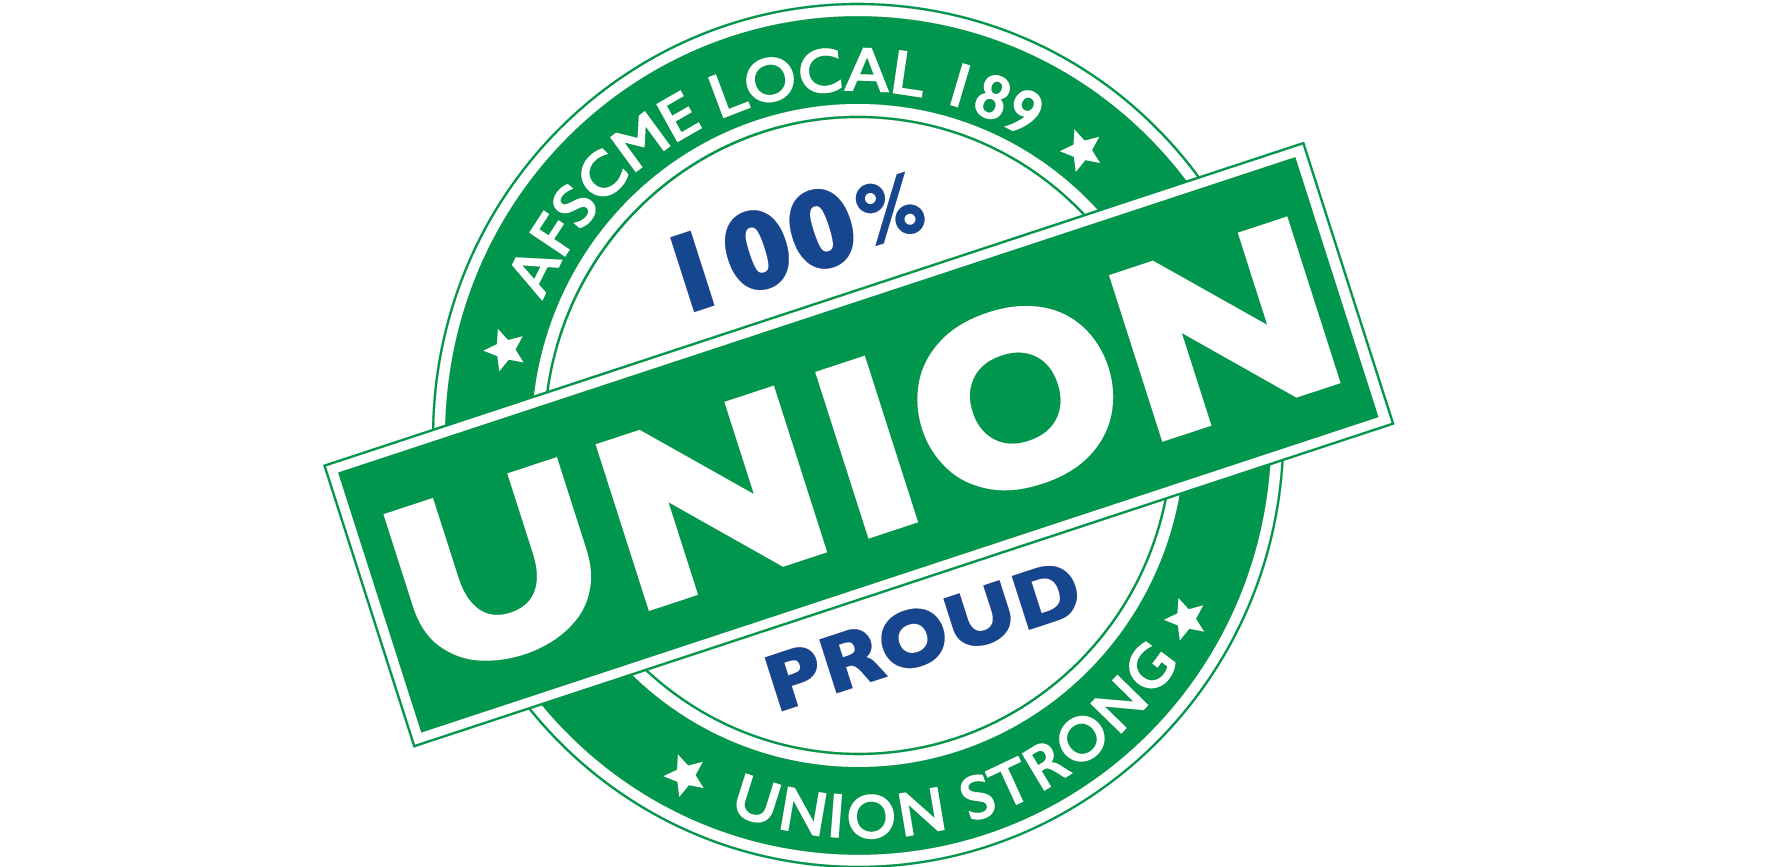 100 Percent Union Proud AFSCME 189 Logo